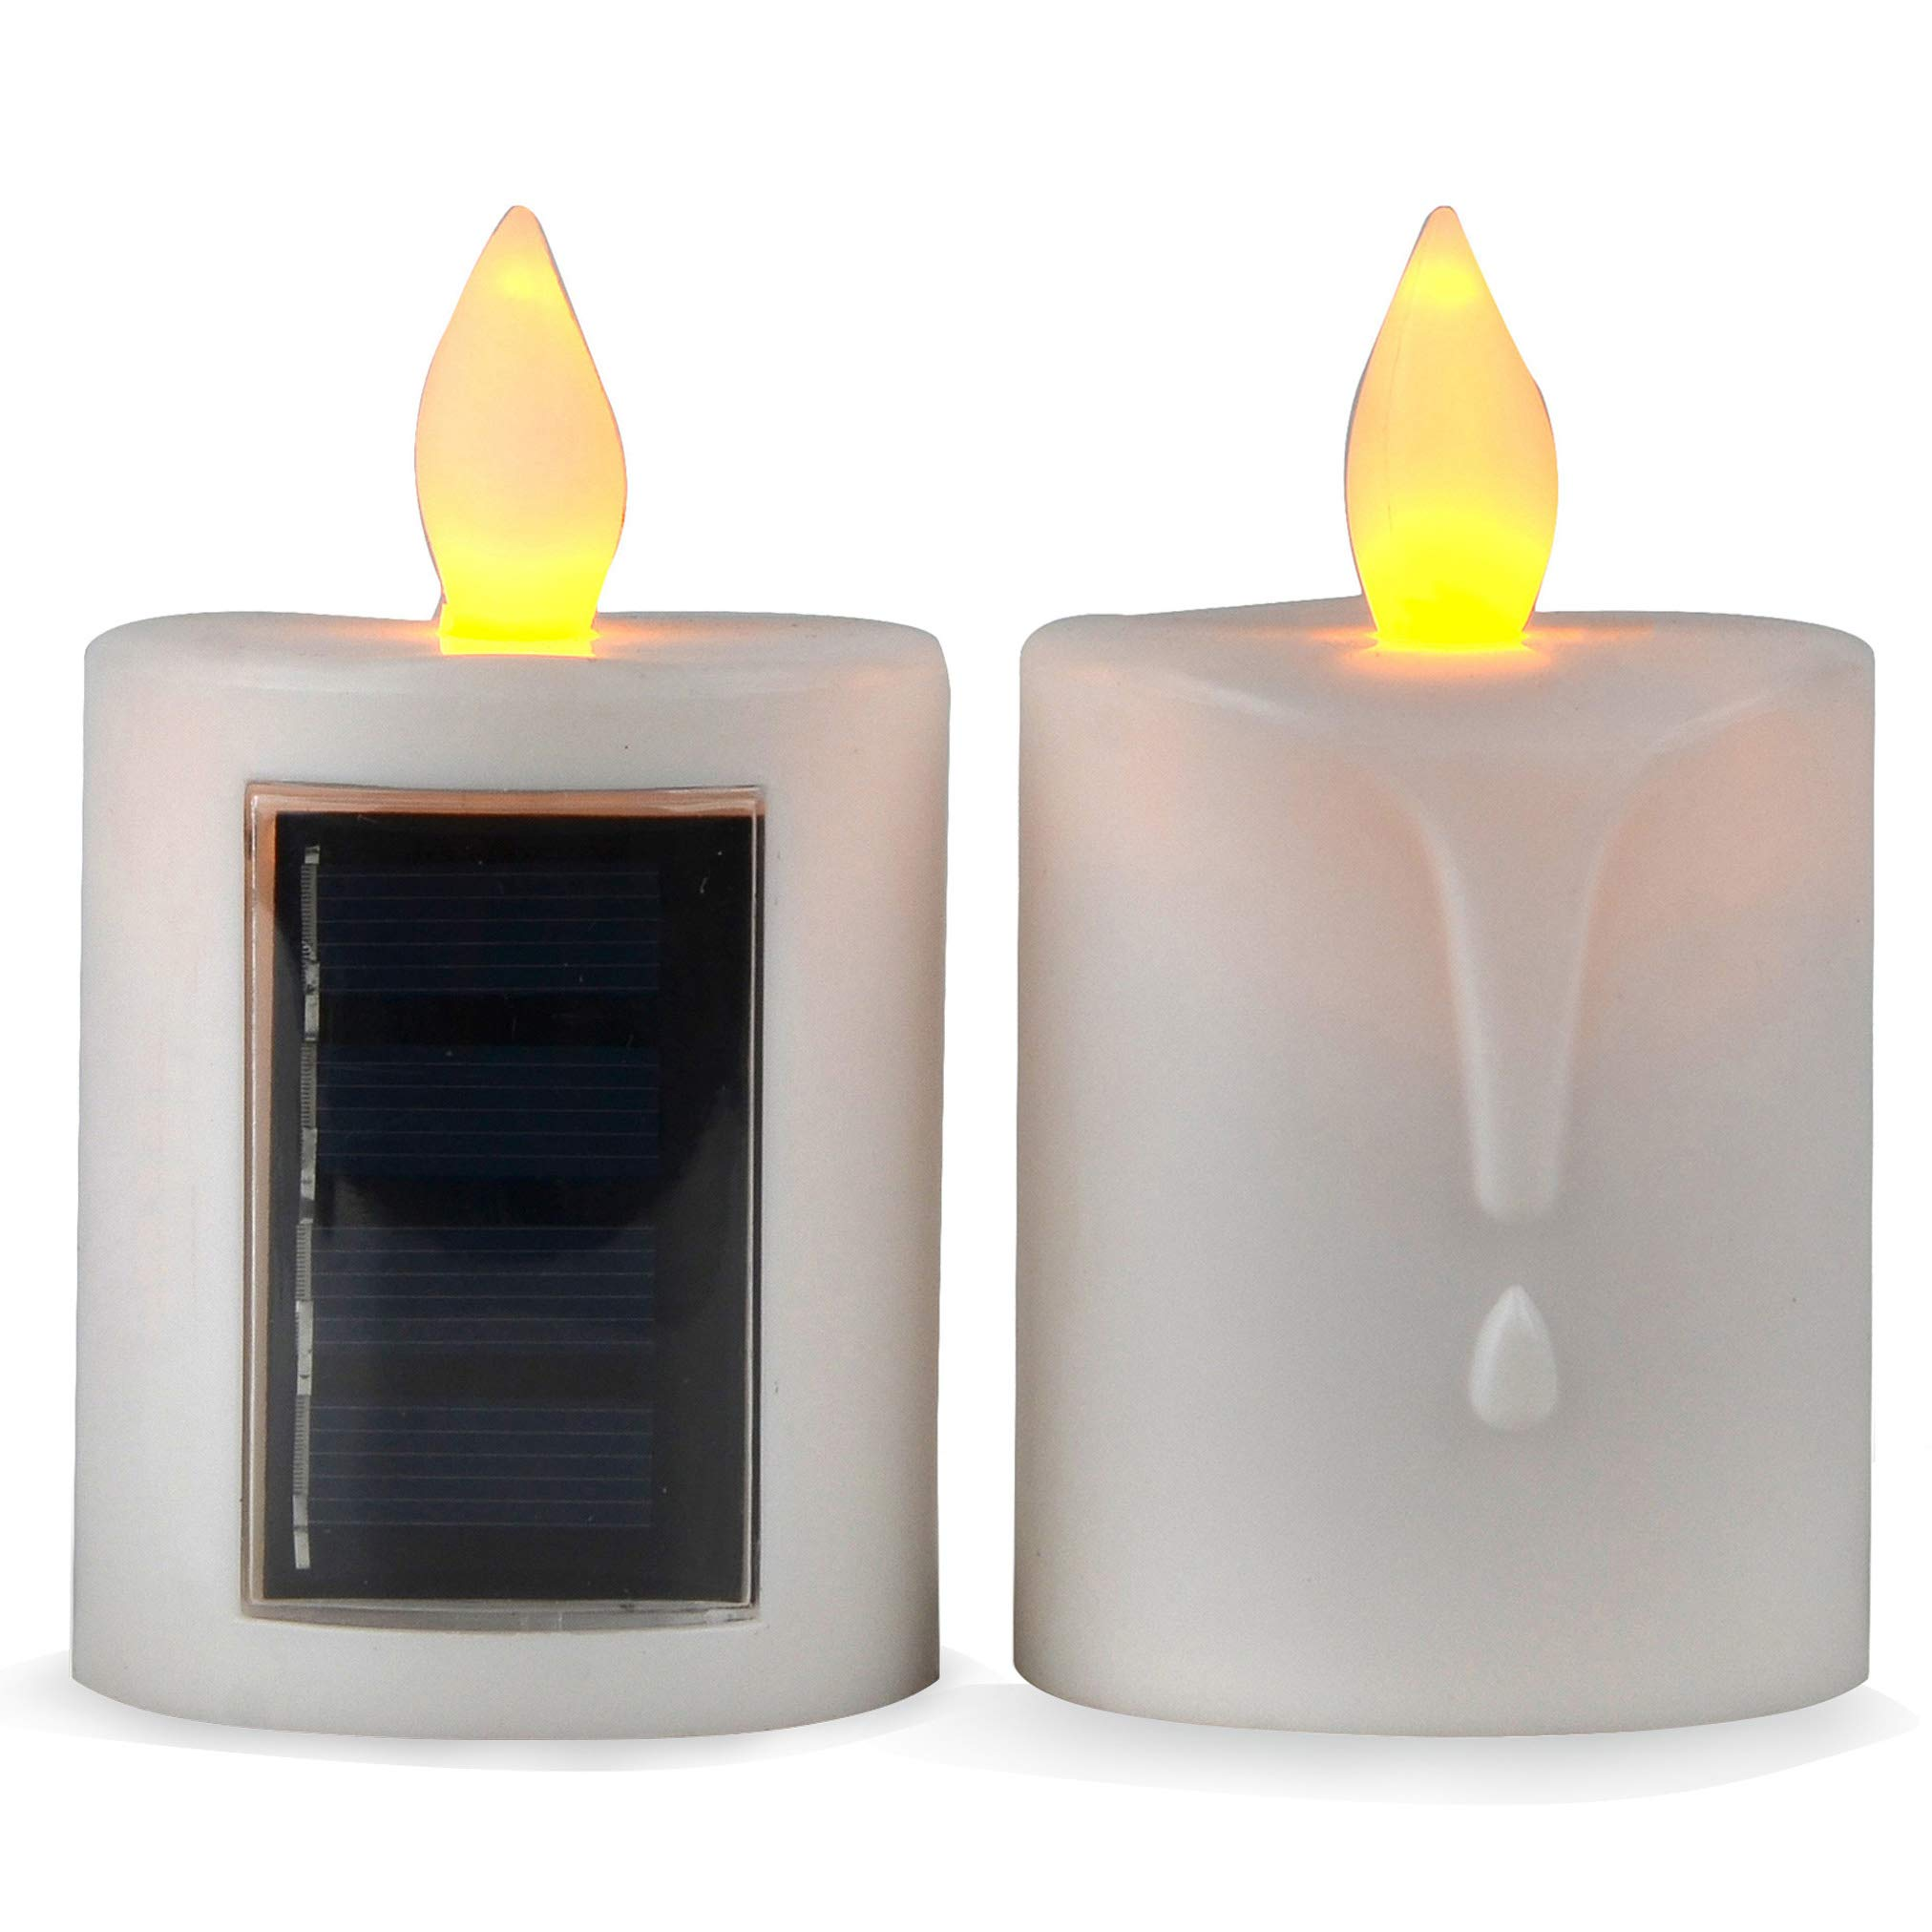 Solar Powered LED Candle Light Flameless Electronic Plastic LED Light for Outdoor Camping, 2PCS